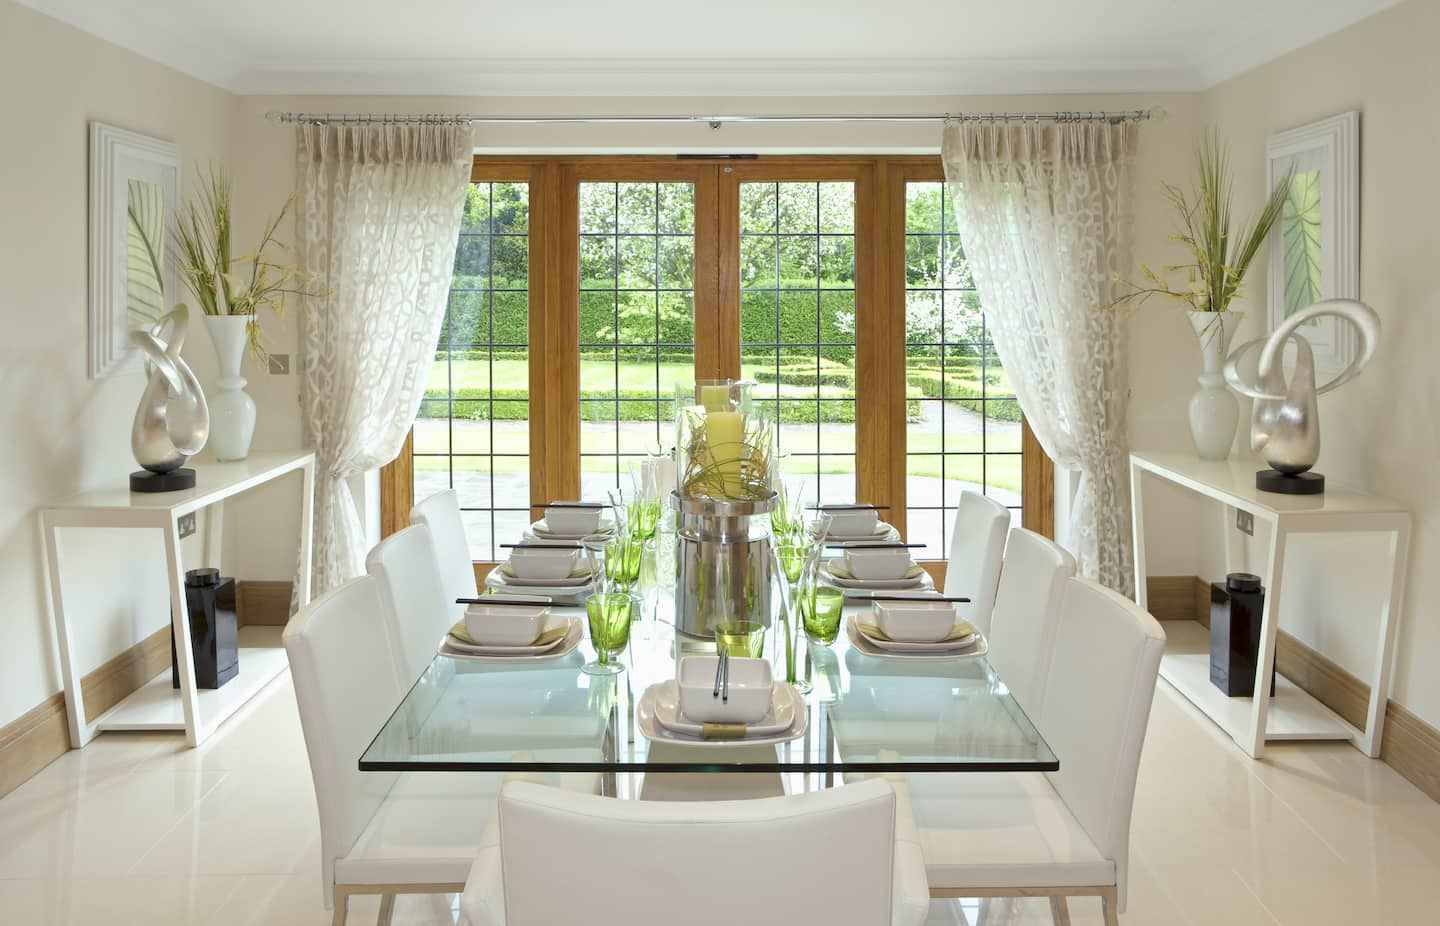 Attrayant Contemporary Formal Dining Room With White Chairs, Glass Table, Garden View  Through Glass Doors